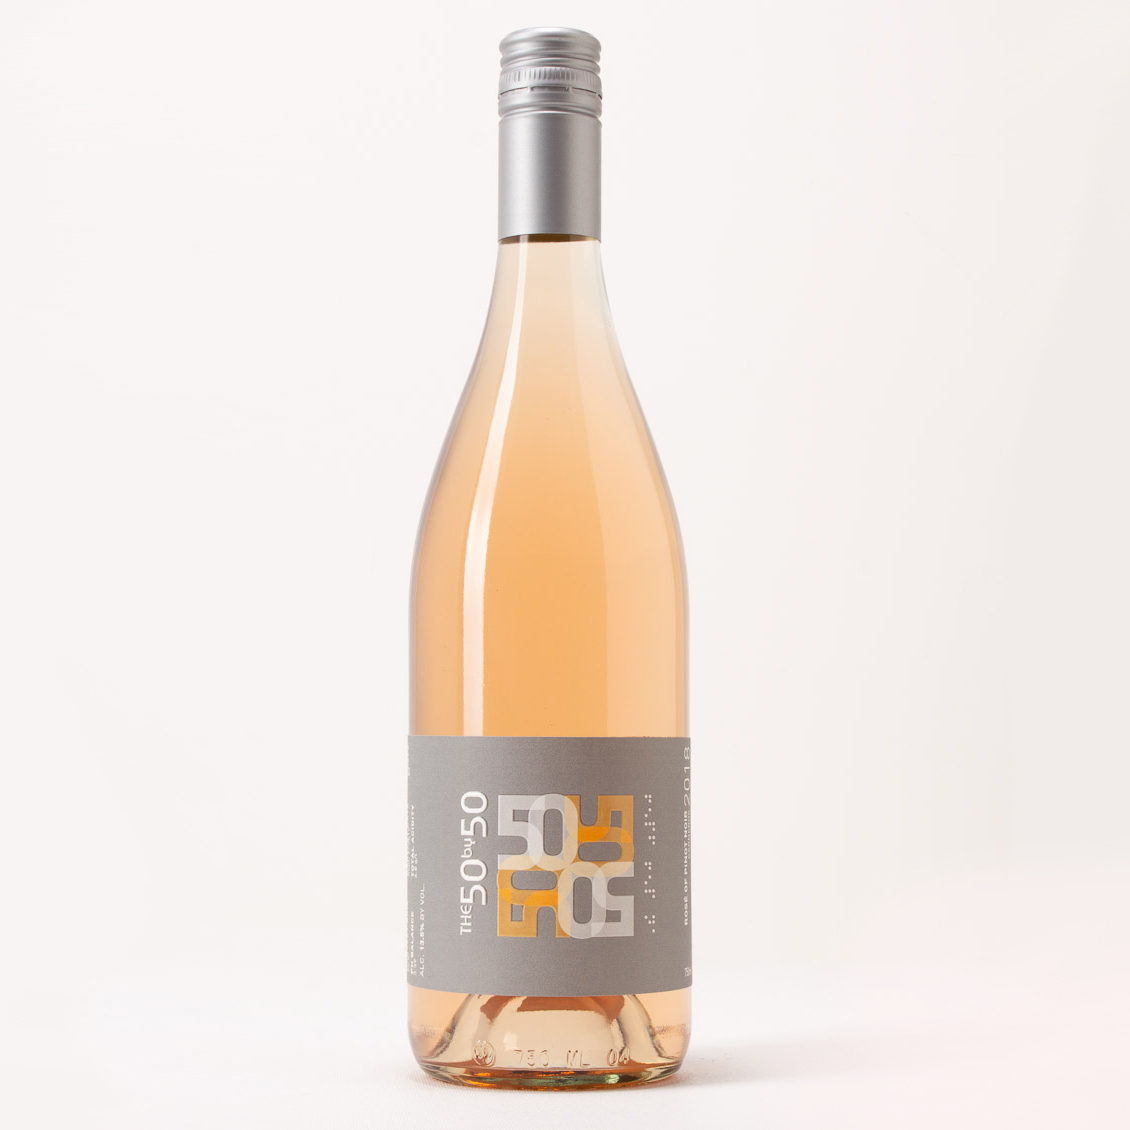 2019 Carneros Rosé of Pinot Noir, Reinke Vineyard